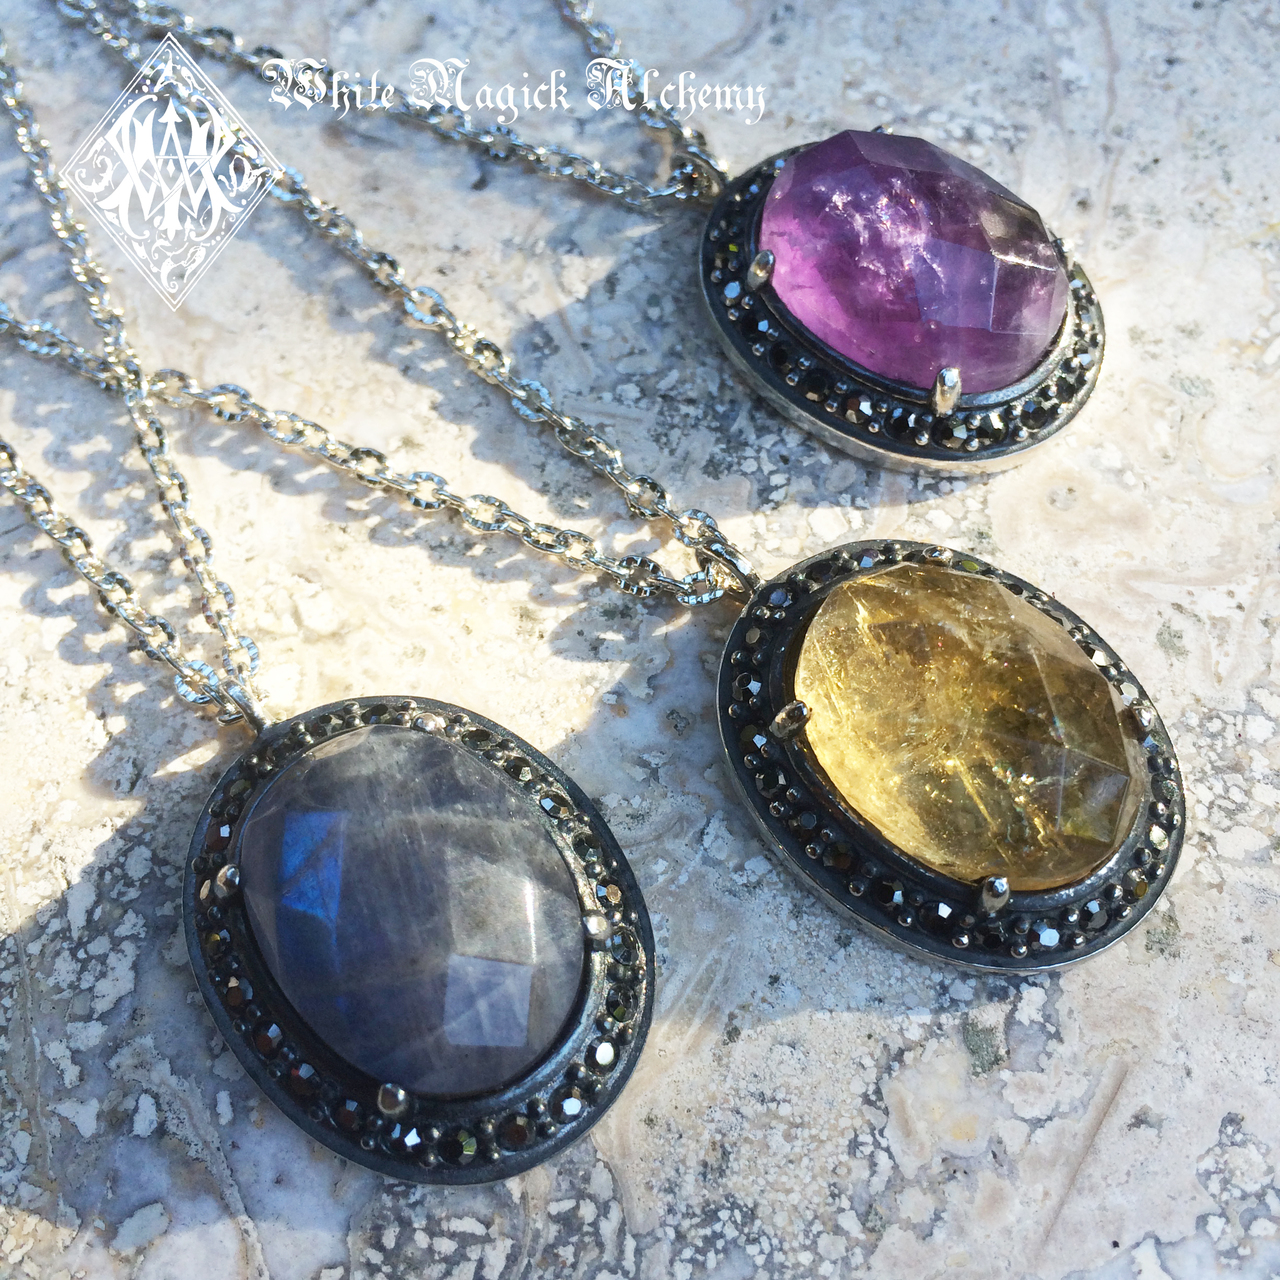 Princess pendants in labradorite citrine amethyst gemstone princess pendants in labradorite citrine amethyst gemstone pendants in silver with marcasite aloadofball Image collections